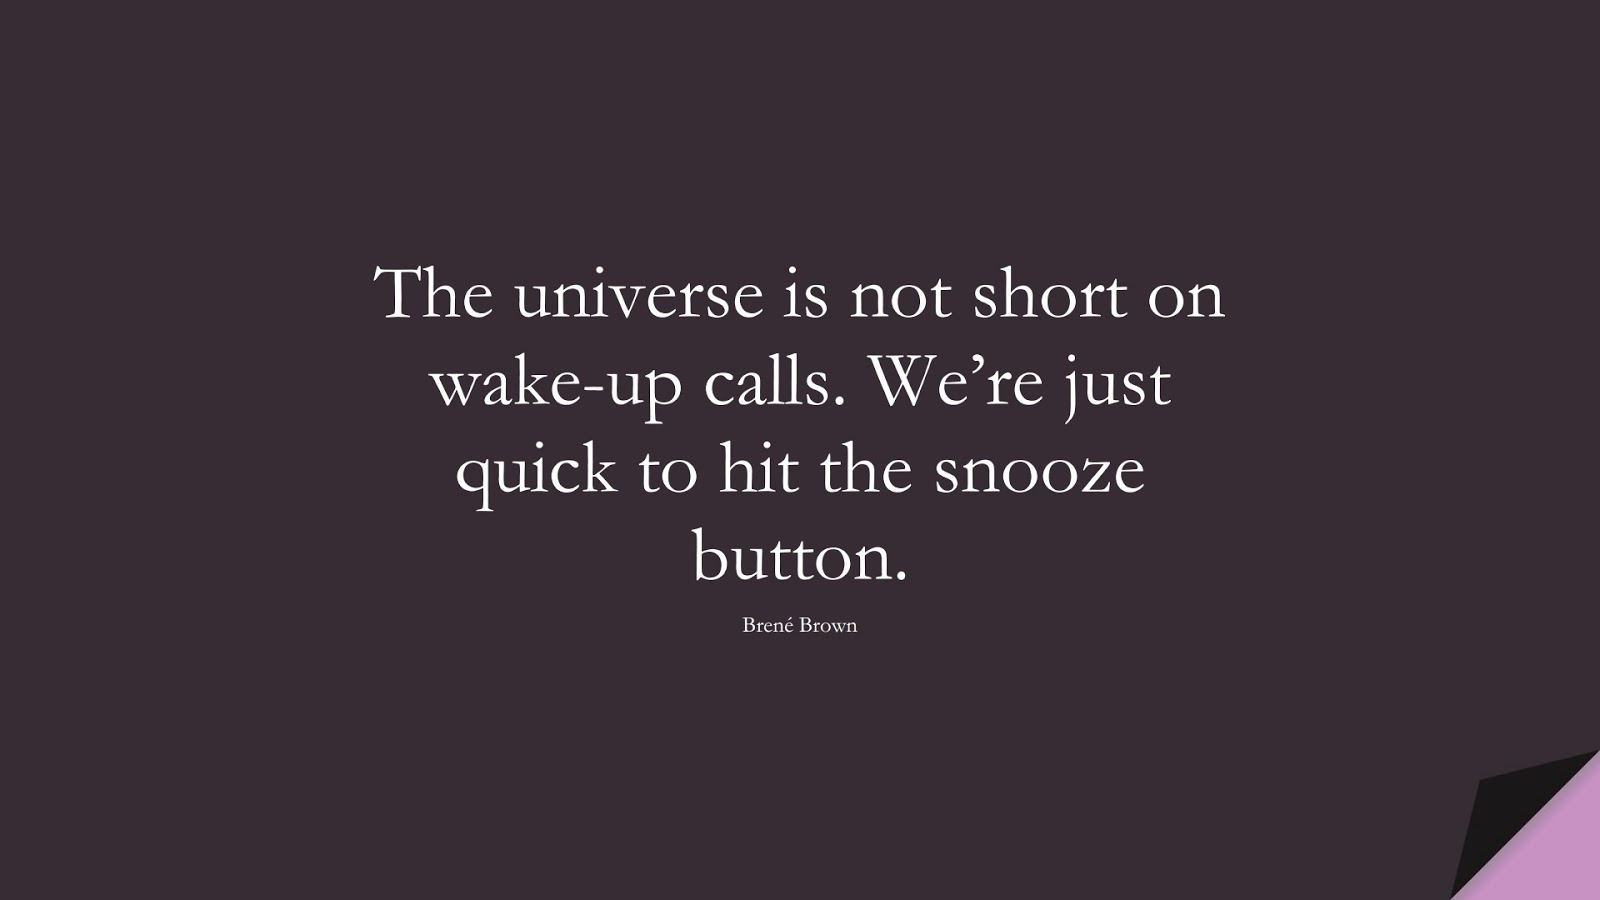 The universe is not short on wake-up calls. We're just quick to hit the snooze button. (Brené Brown);  #DepressionQuotes